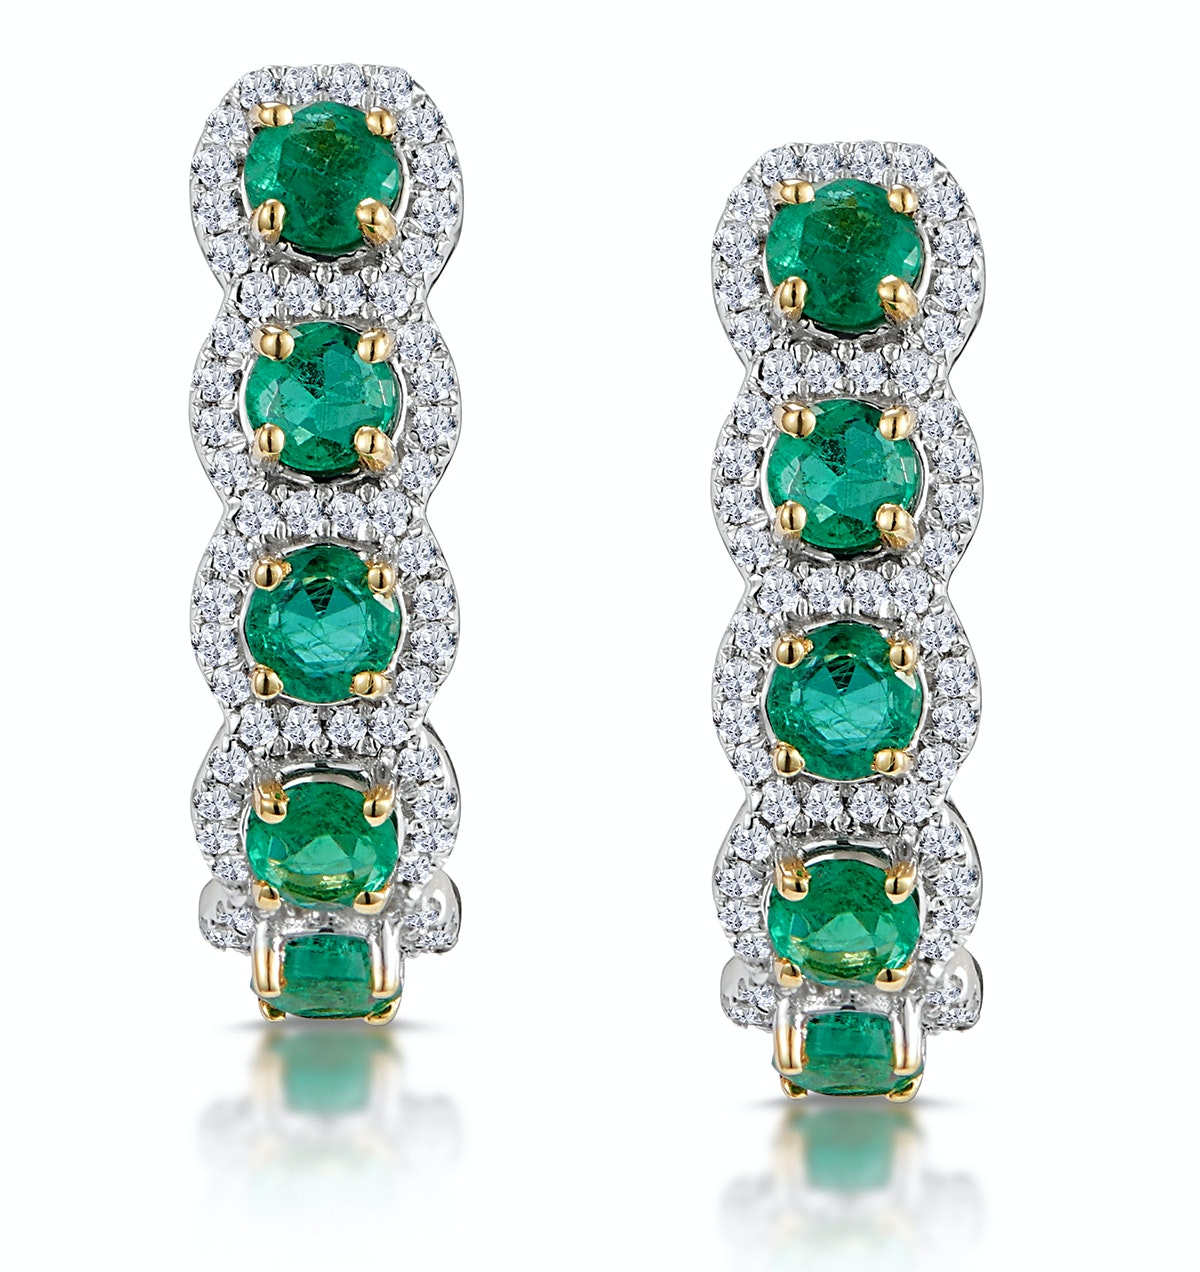 1.20ct Emerald and Diamond Halo Asteria Earrings in 18K Gold